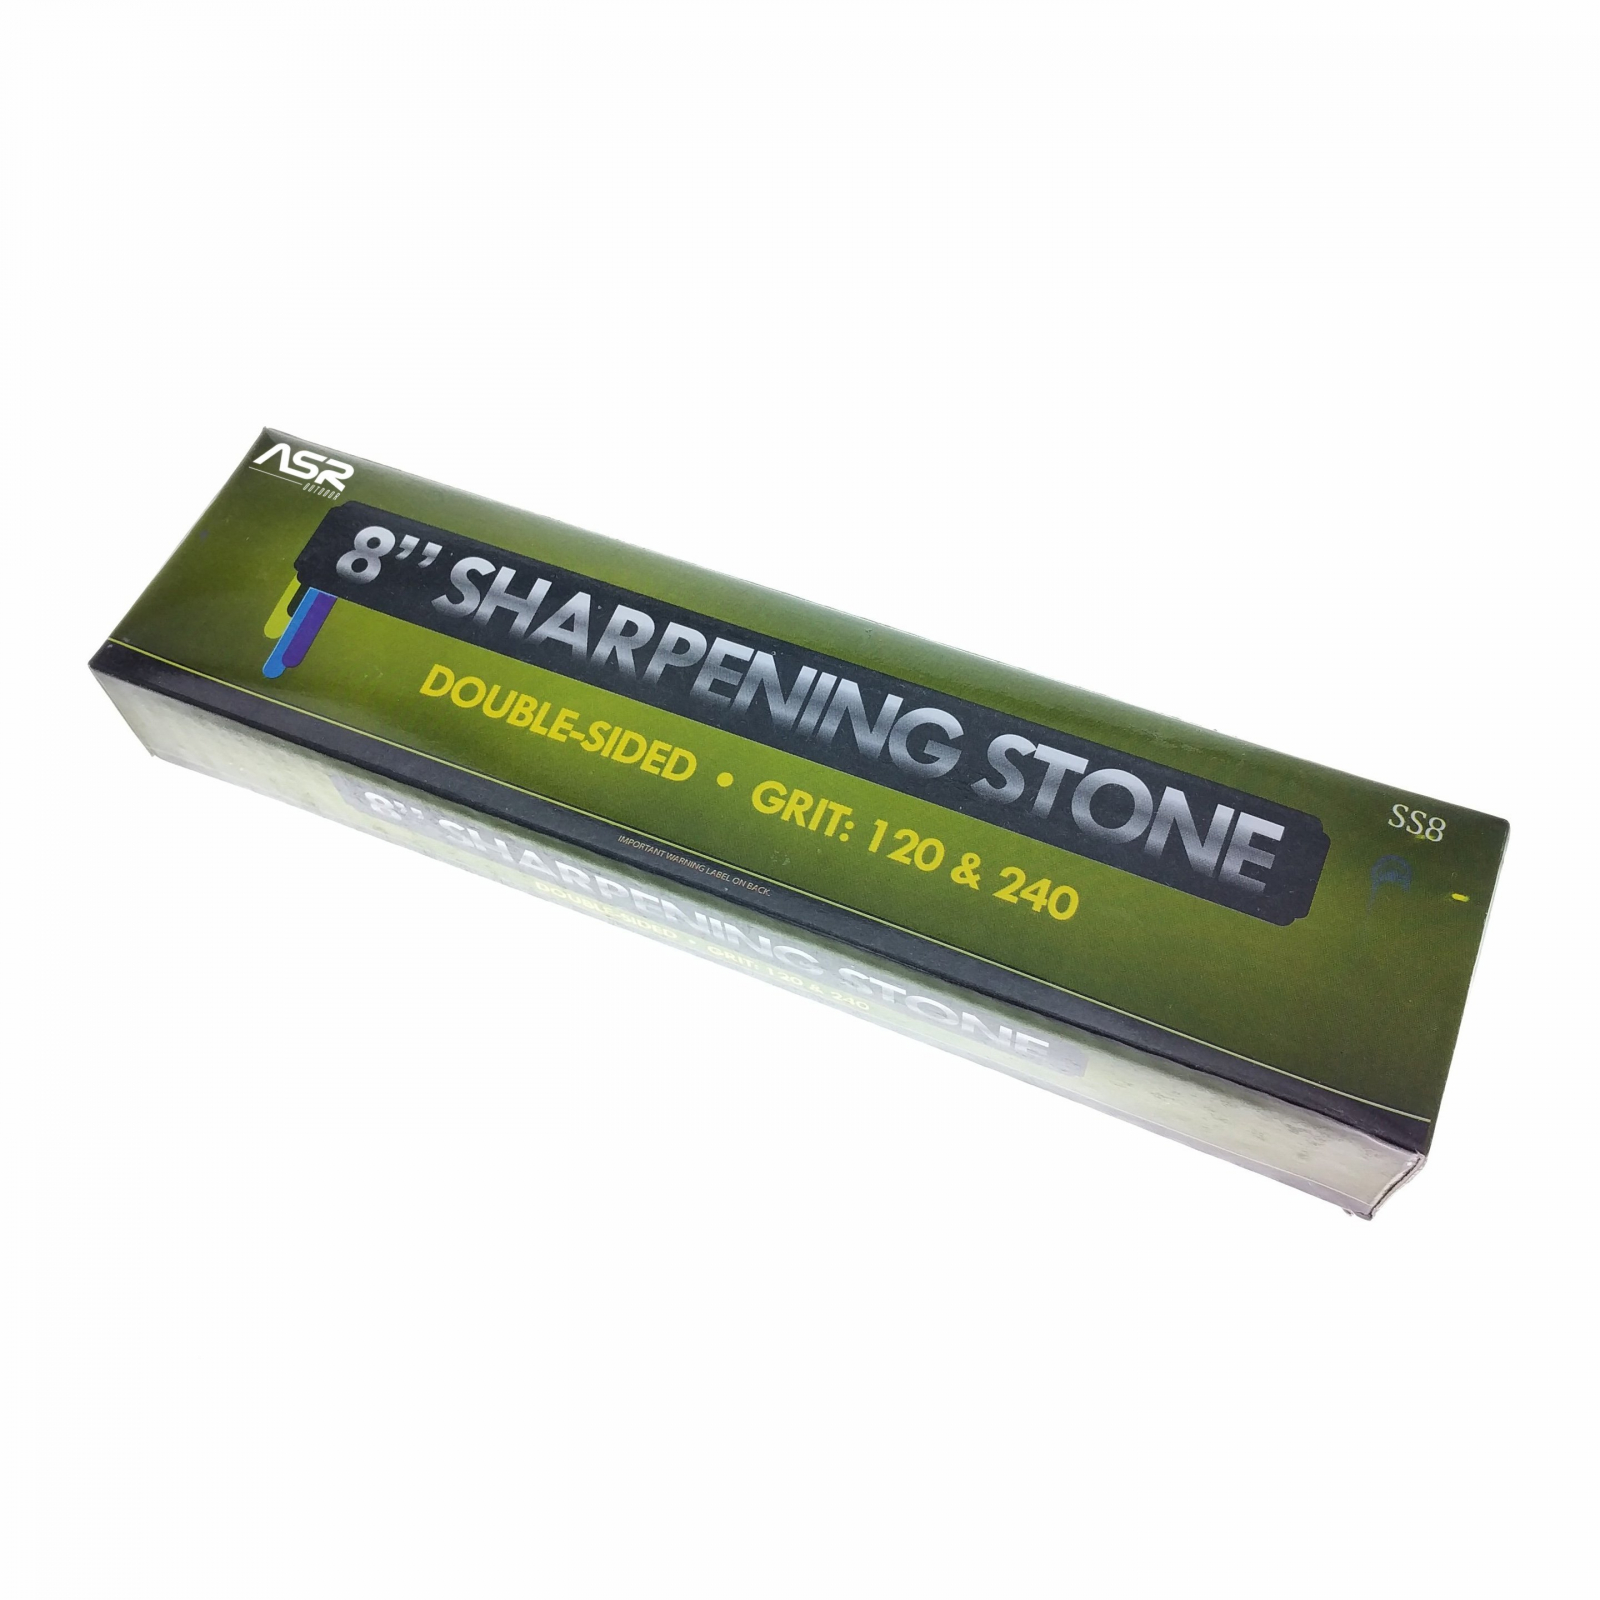 8 inch 2 Sided Sharpener Sharpening Stone